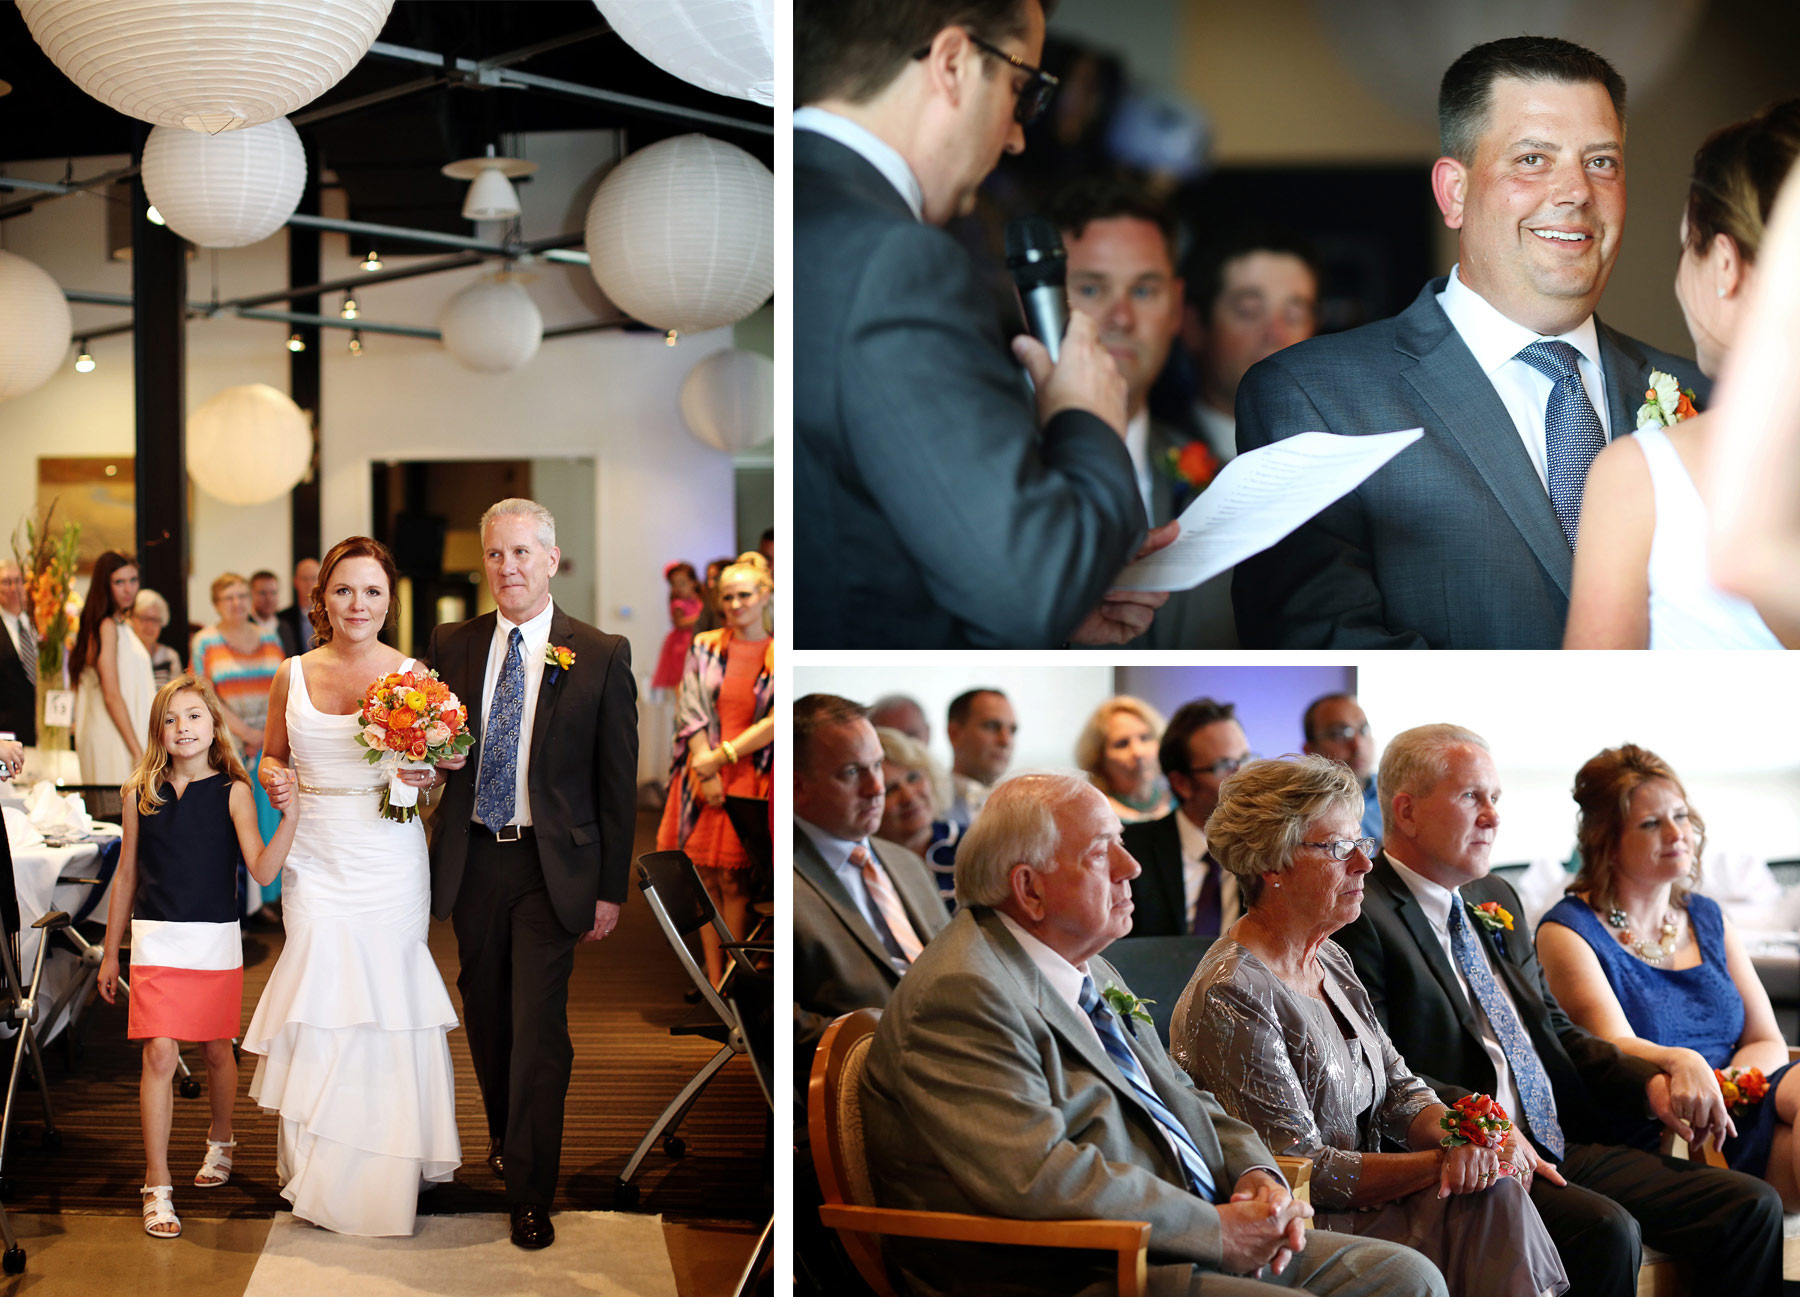 14-Des-Moines-Iowa-Wedding-Photography-by-Vick-Photography--Embassy-Club-West-Ceremony-Lindsay-&-Chad.jpg